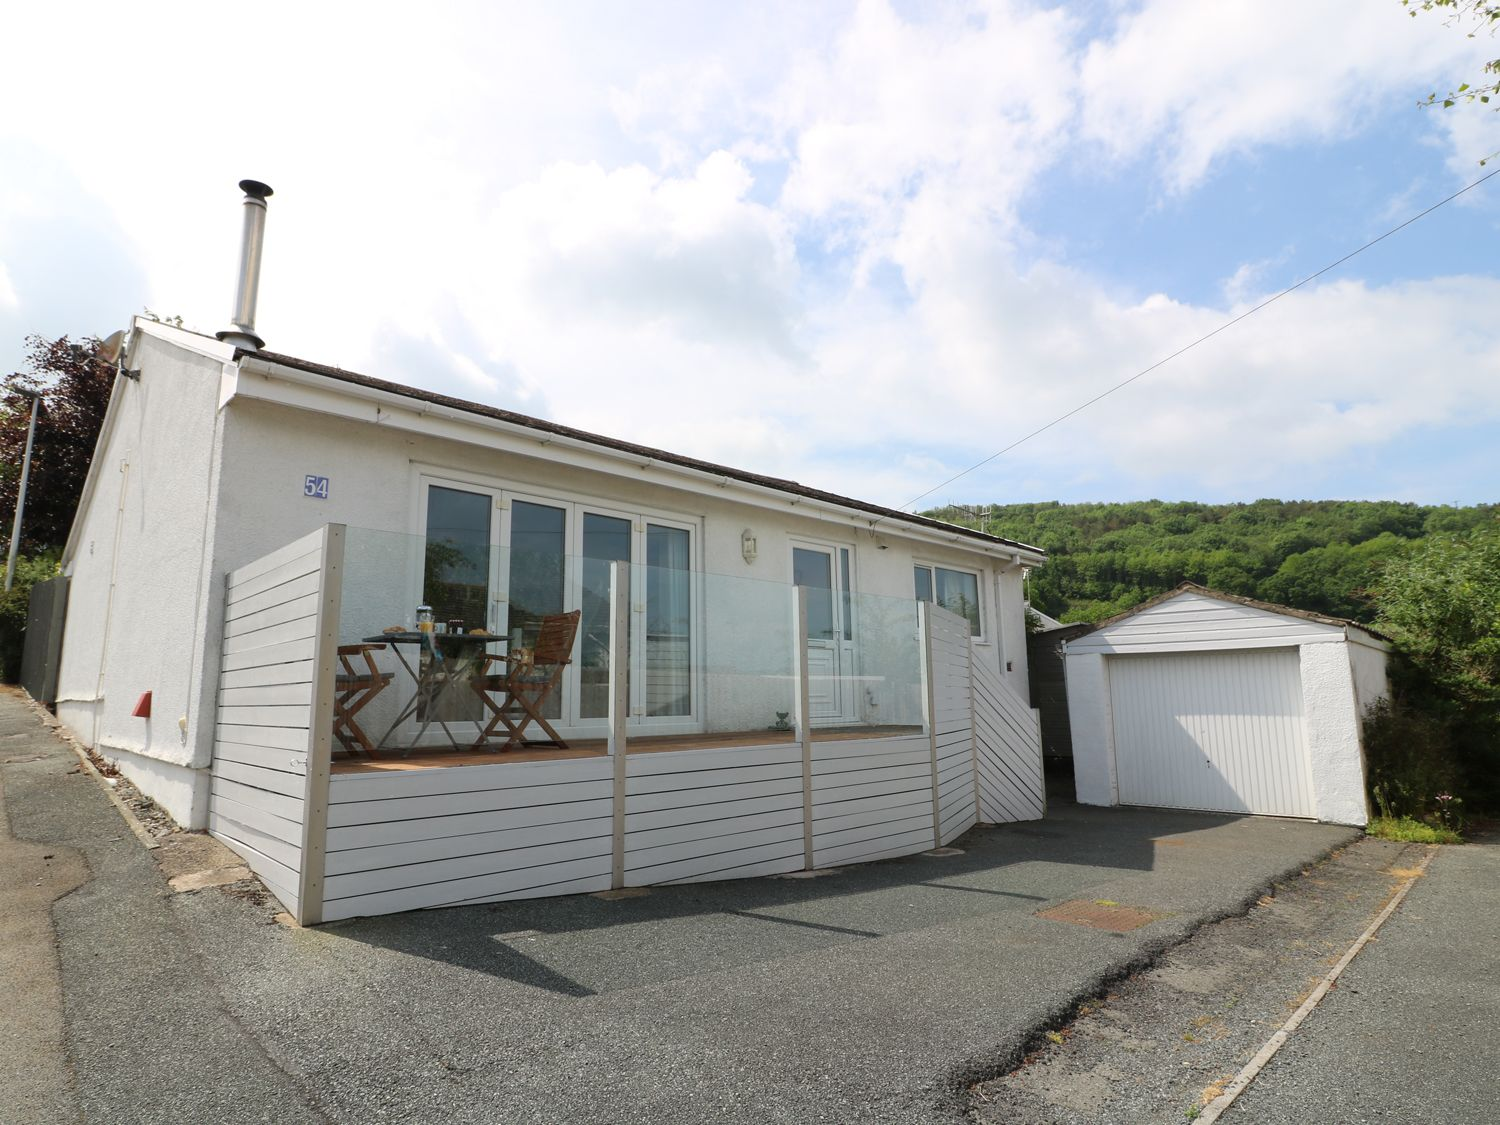 54 The Moorings - South Wales - 970050 - photo 1